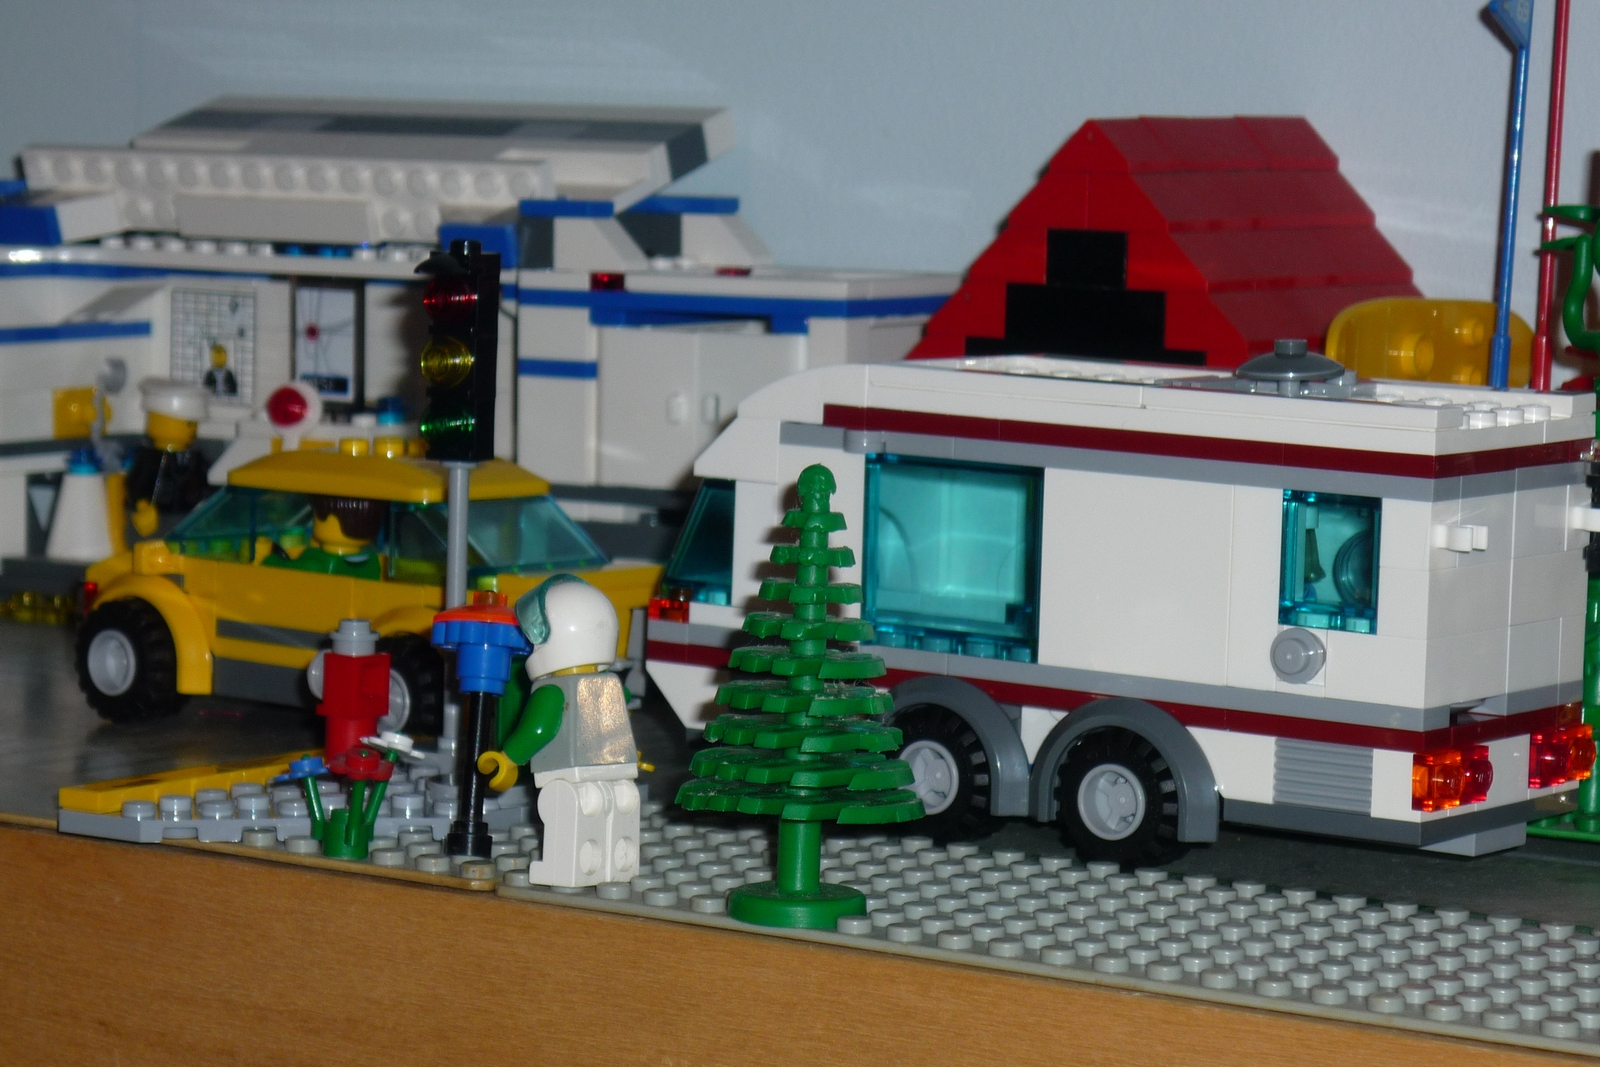 Elegant Serene Beachside RV Park Or A LEGO RV Collection